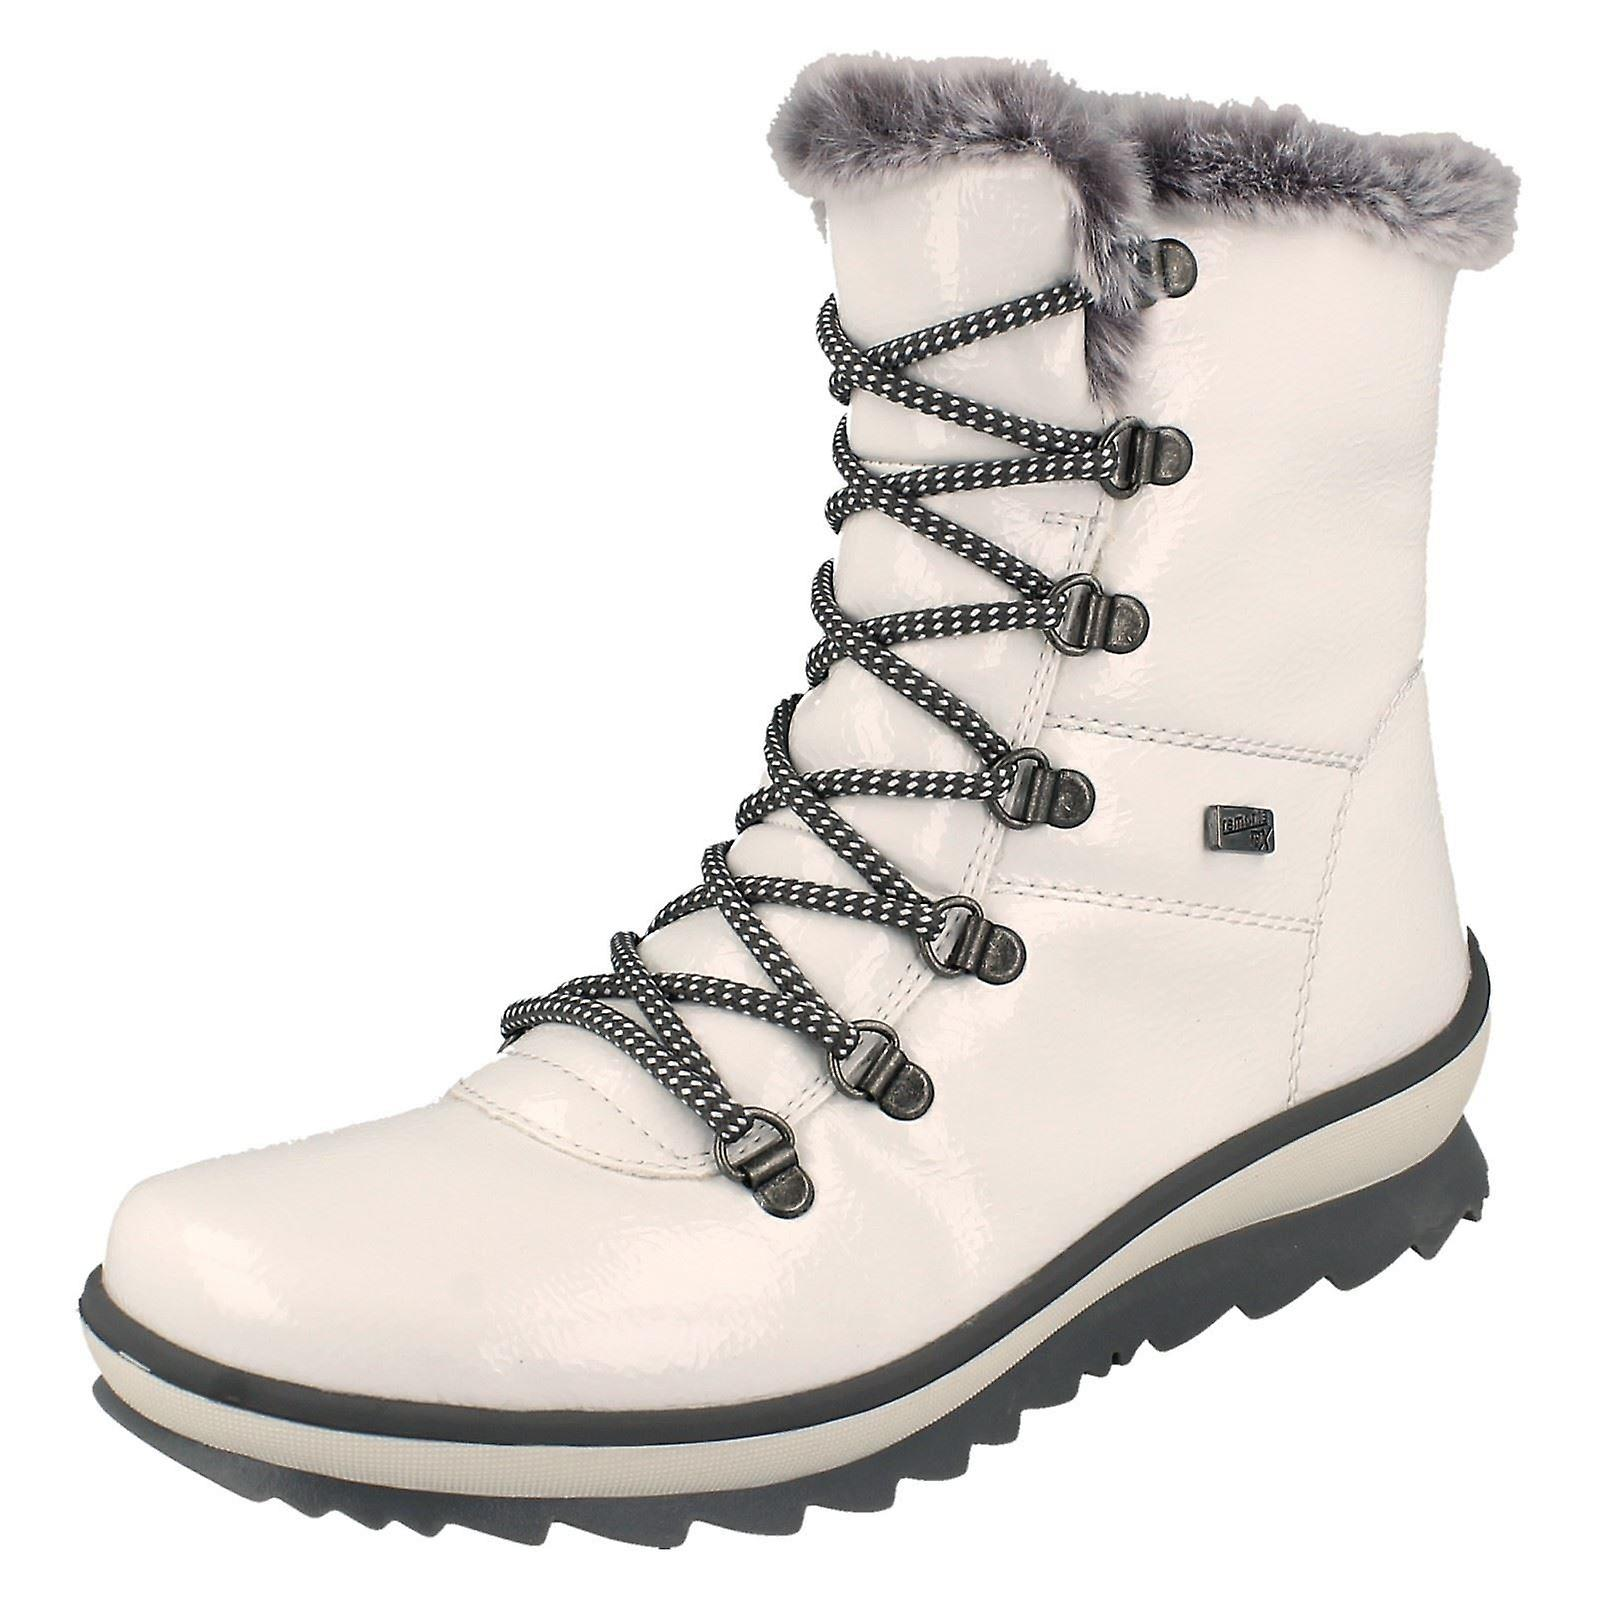 Ladies Remonte Warm Lined Boots R8472 opnlX